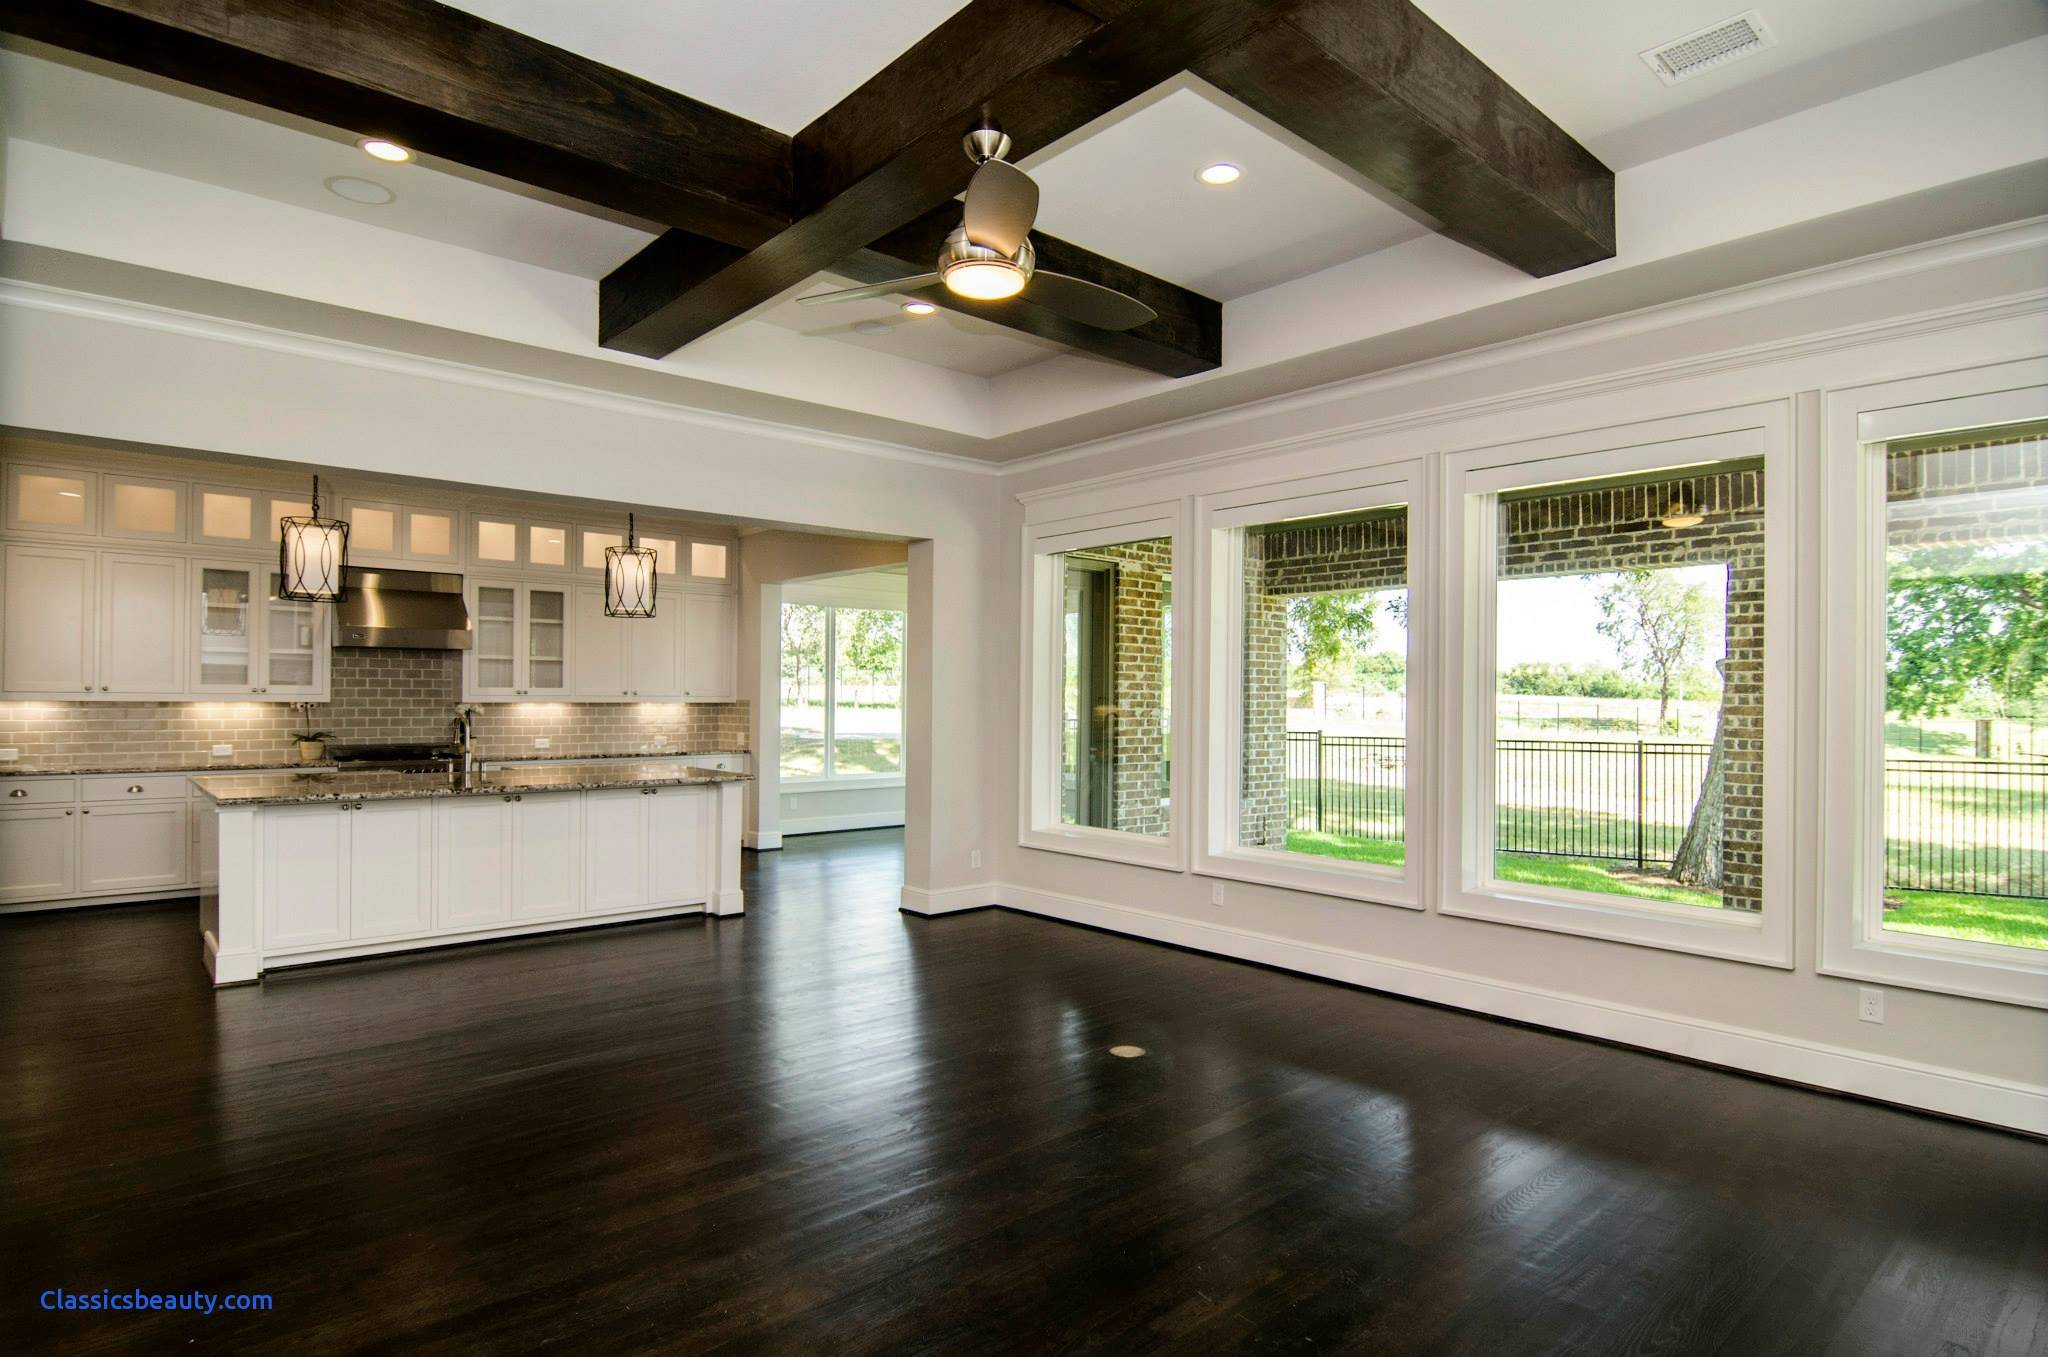 16 Open Floor Plans With Large Kitchens